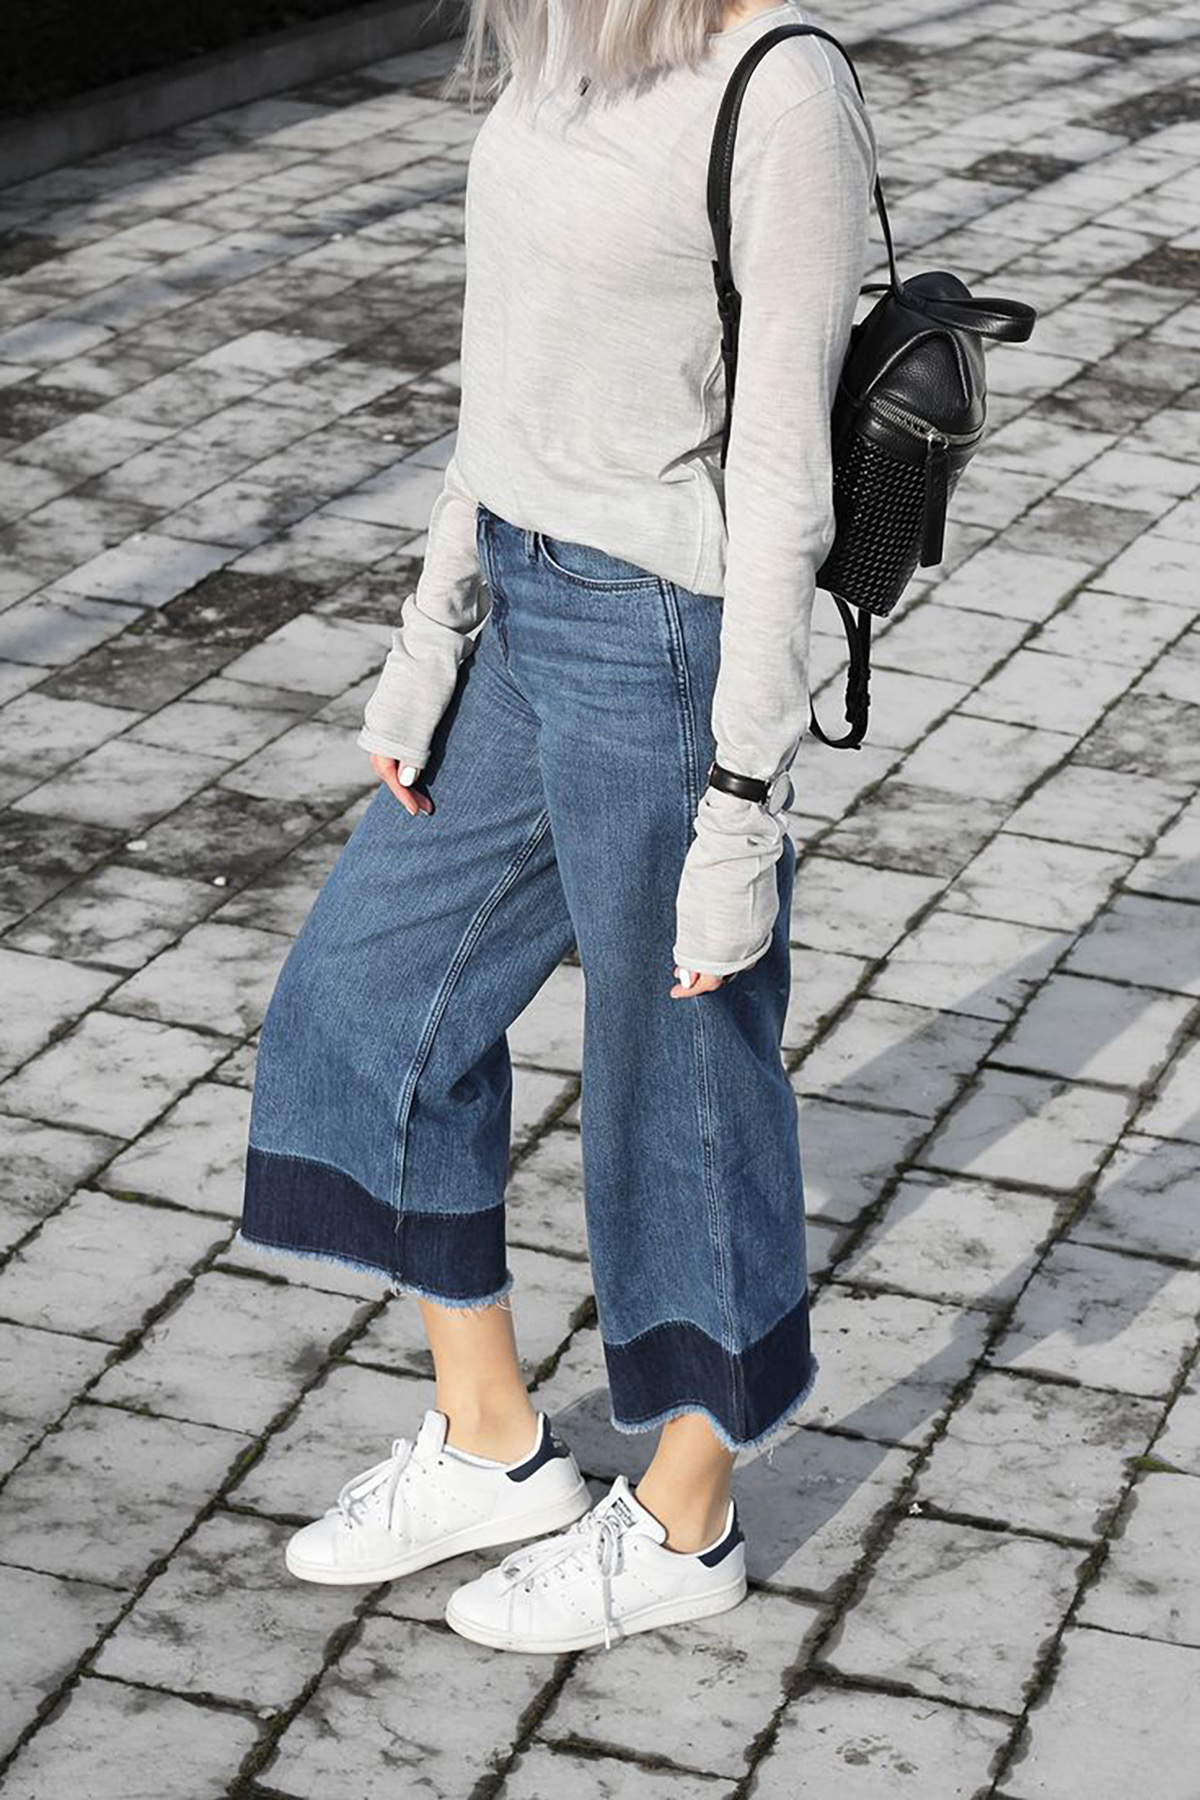 By , flare jeans had come into vogue among women, which had a wider, more exaggerated flare than boot-cuts (boot-fits). The boot-cut (boot-fit) style ended up dominating the fashion world for 10 years.